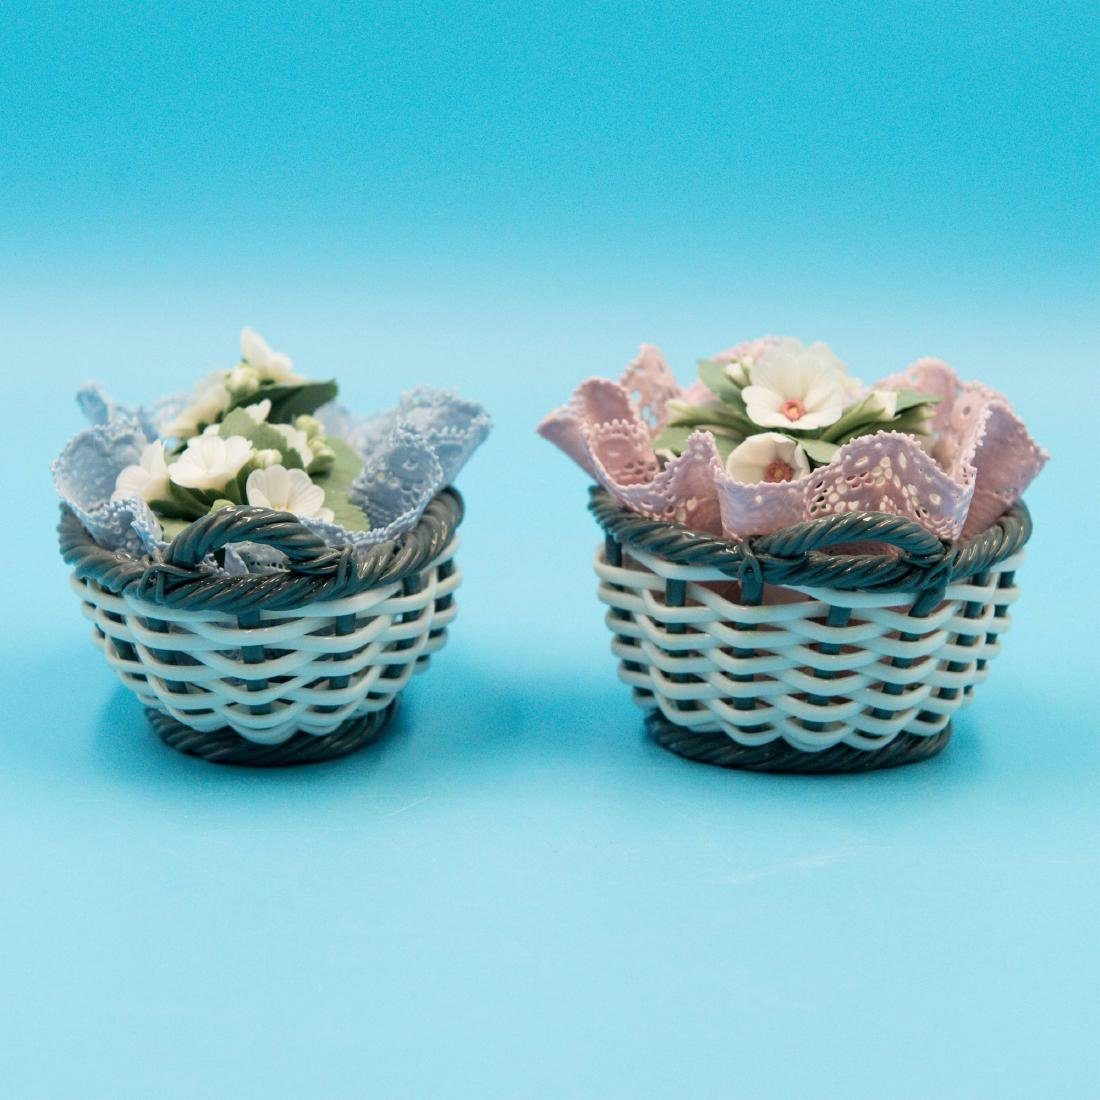 LLADRO 2 SMALL PORCELAIN FLOWER BASKETS - 3